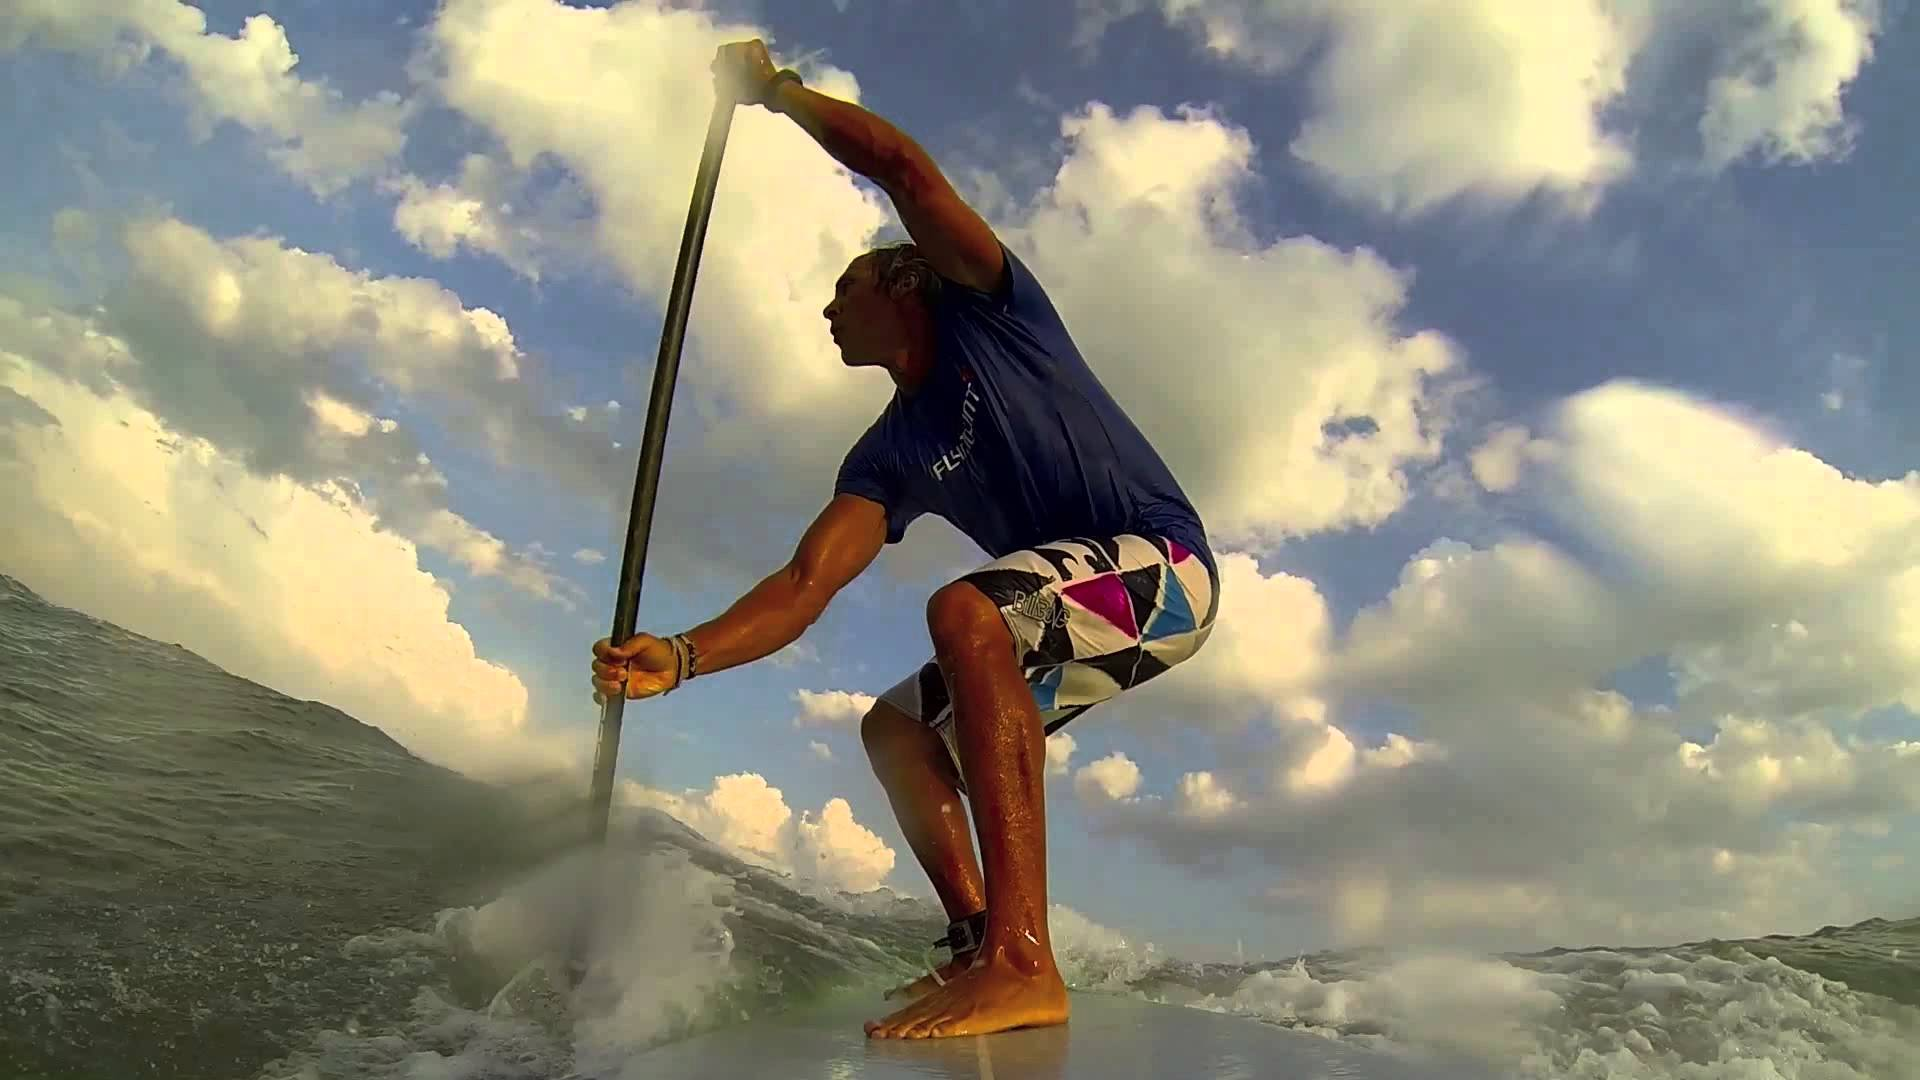 An Italian Summer of SUP with Francesco Leggio